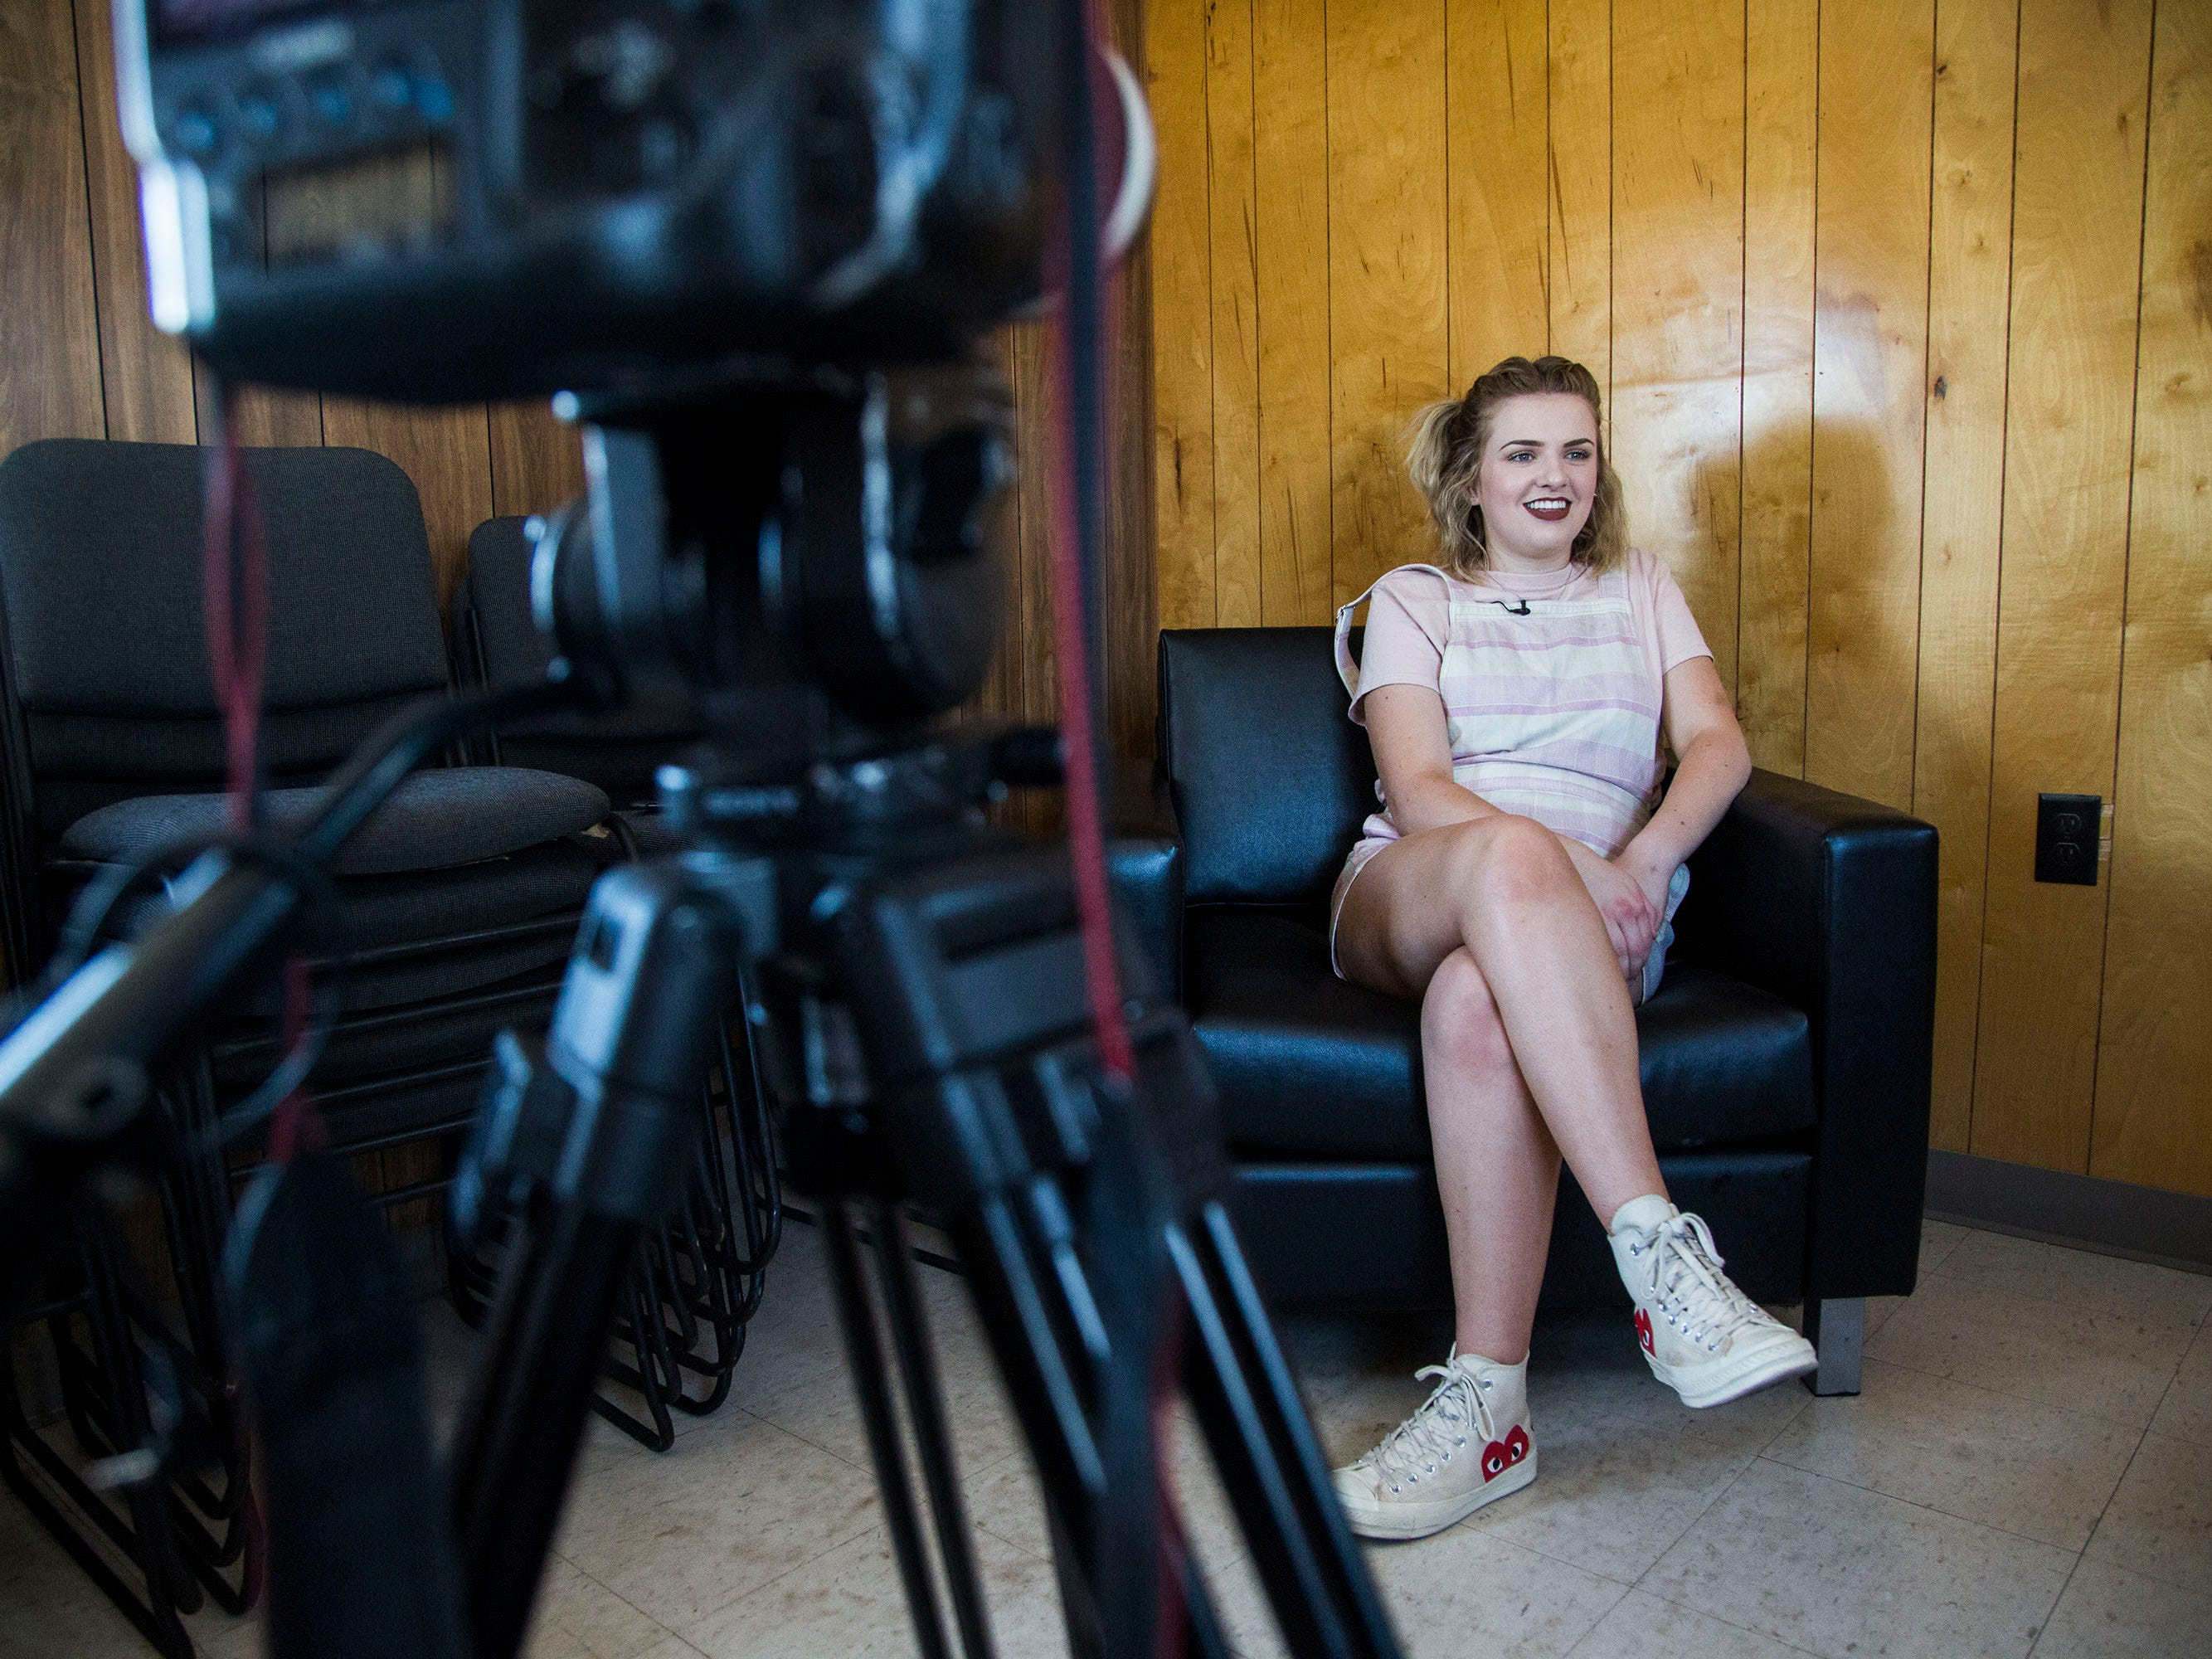 Maddie Poppe, winner of season 16 of American Idol and Iowa native, gives an interview after attending the opening ceremonies for the Iowa State Fair on Thursday, August 9, 2018, in Des Moines.